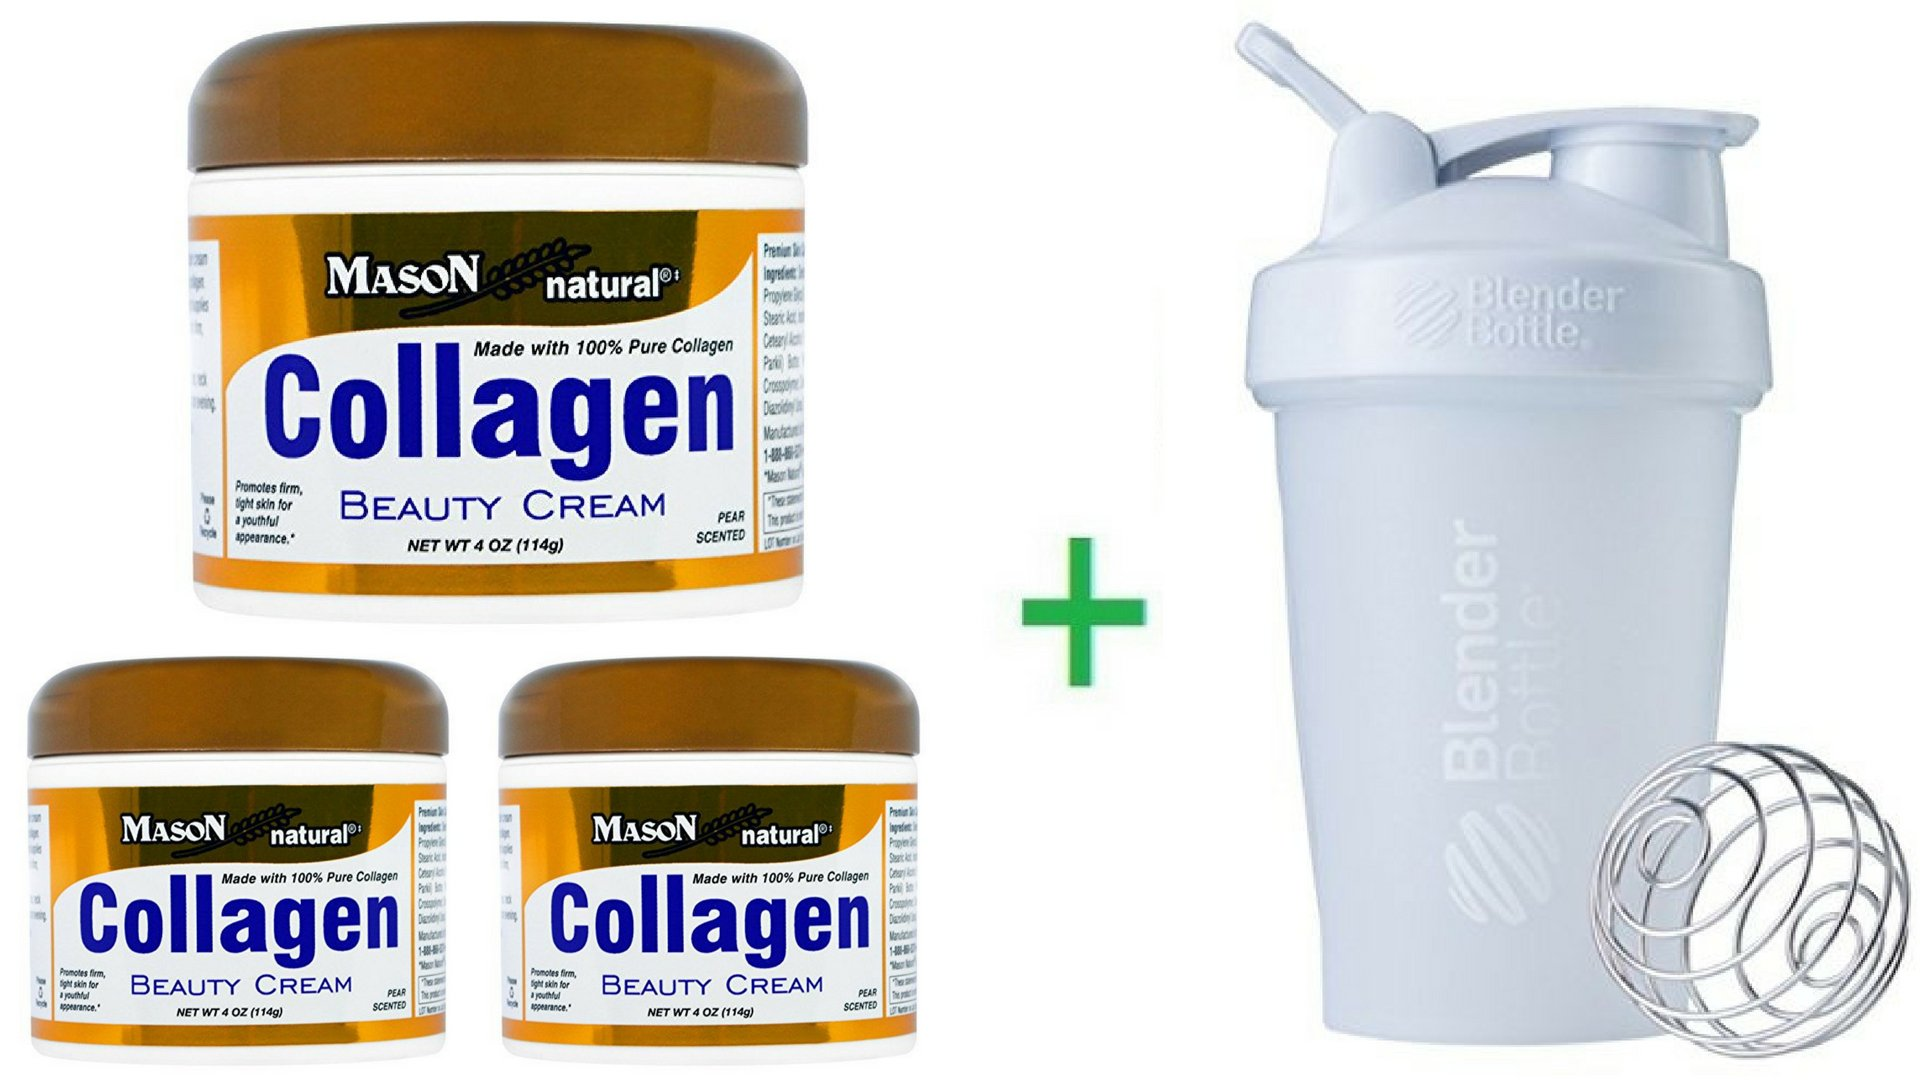 Mason Natural, Collagen Beauty Cream, Pear Scented, 4 oz (114 g) (3 Packs) + Sundesa, BlenderBottle, Classic With Loop, White, 20 oz